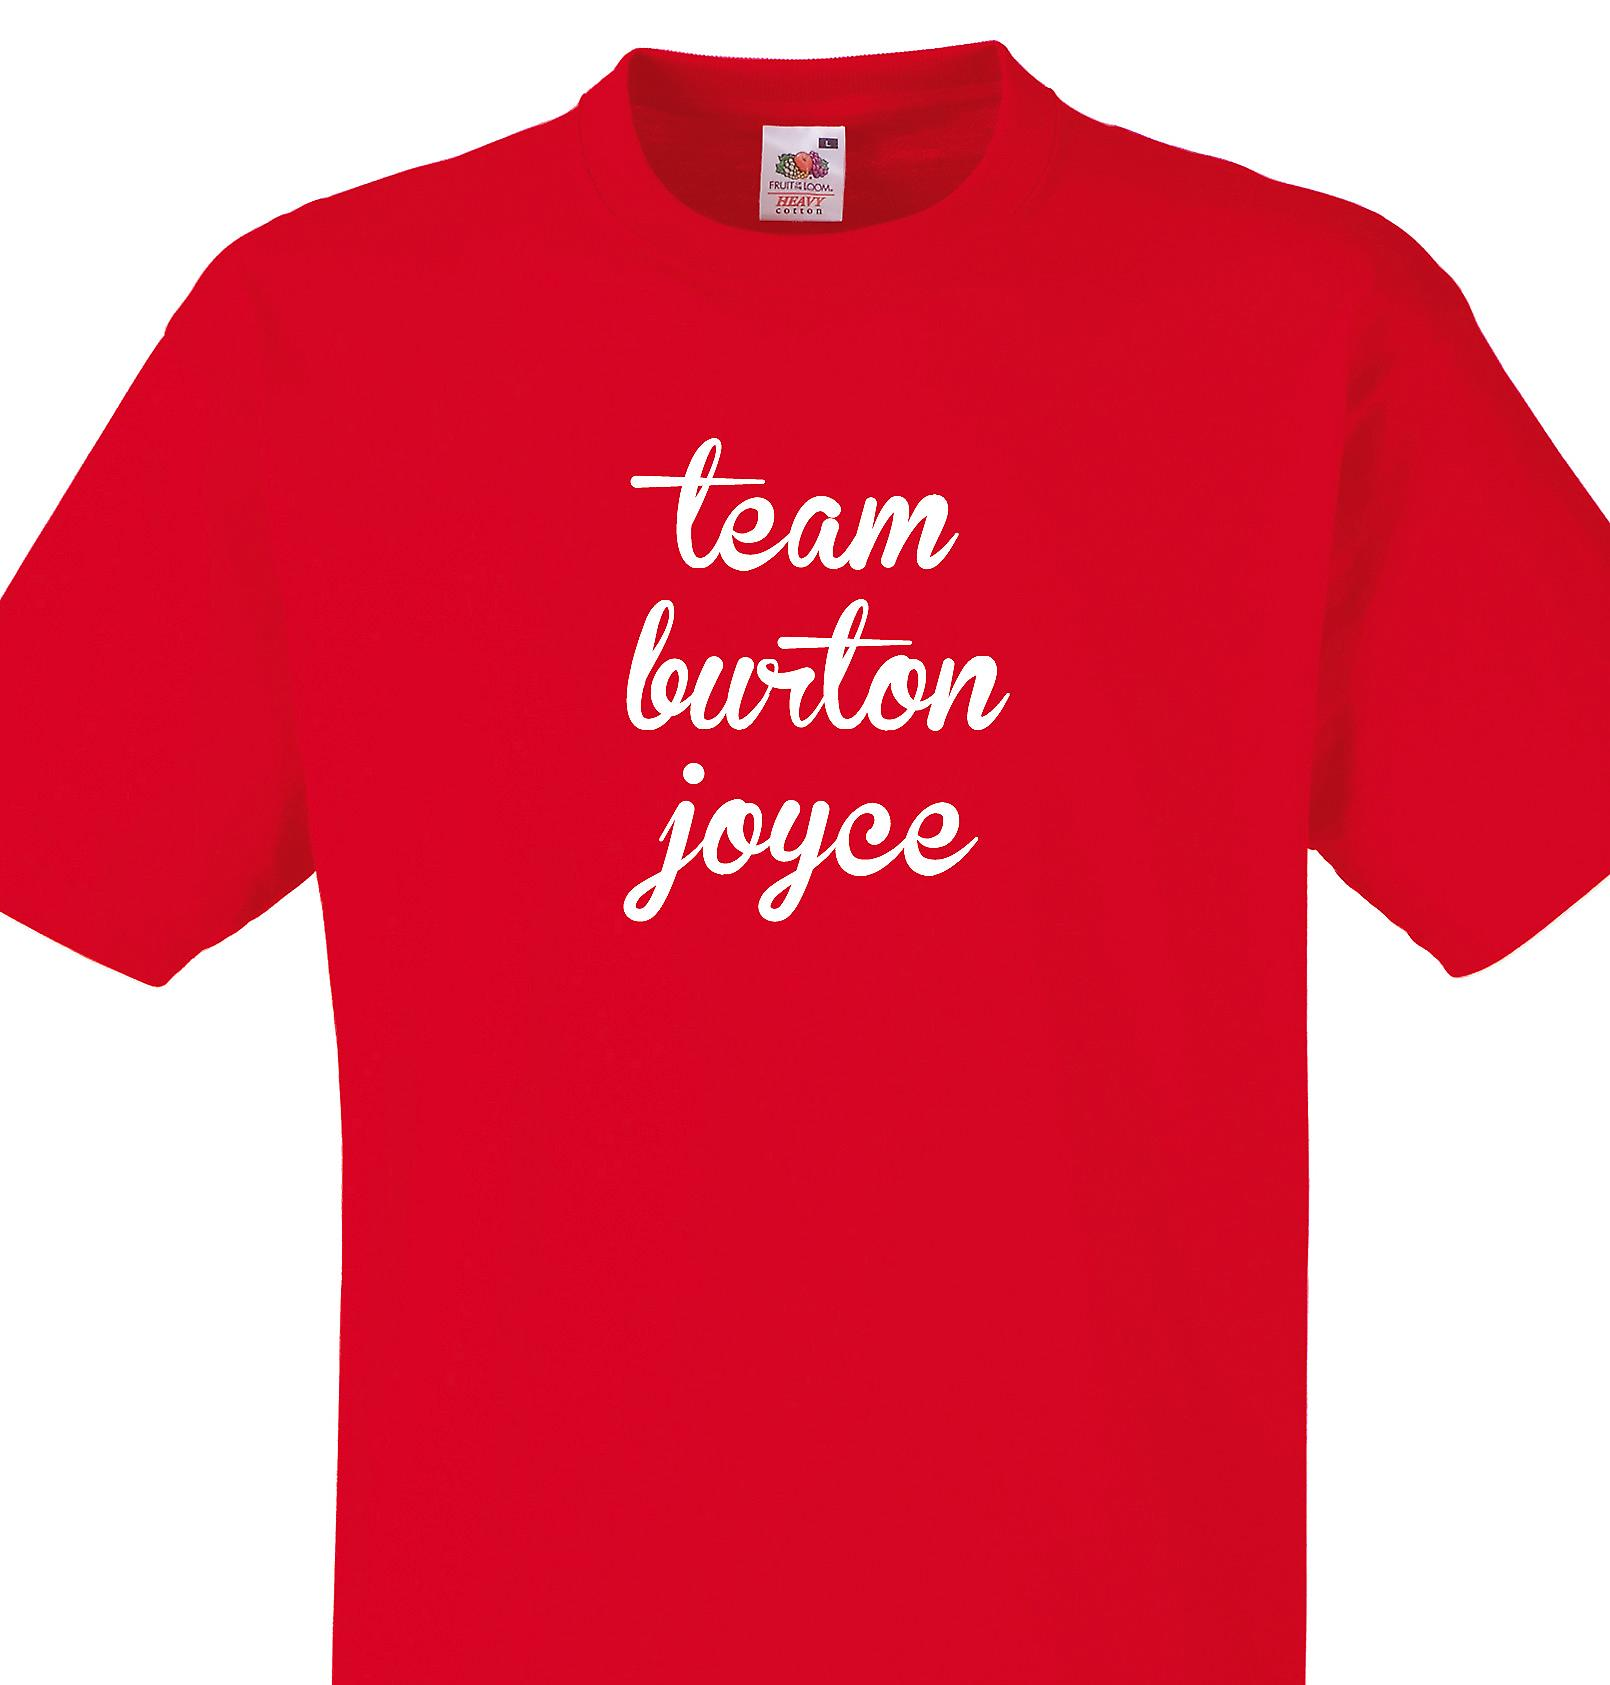 Team Burton joyce Red T shirt